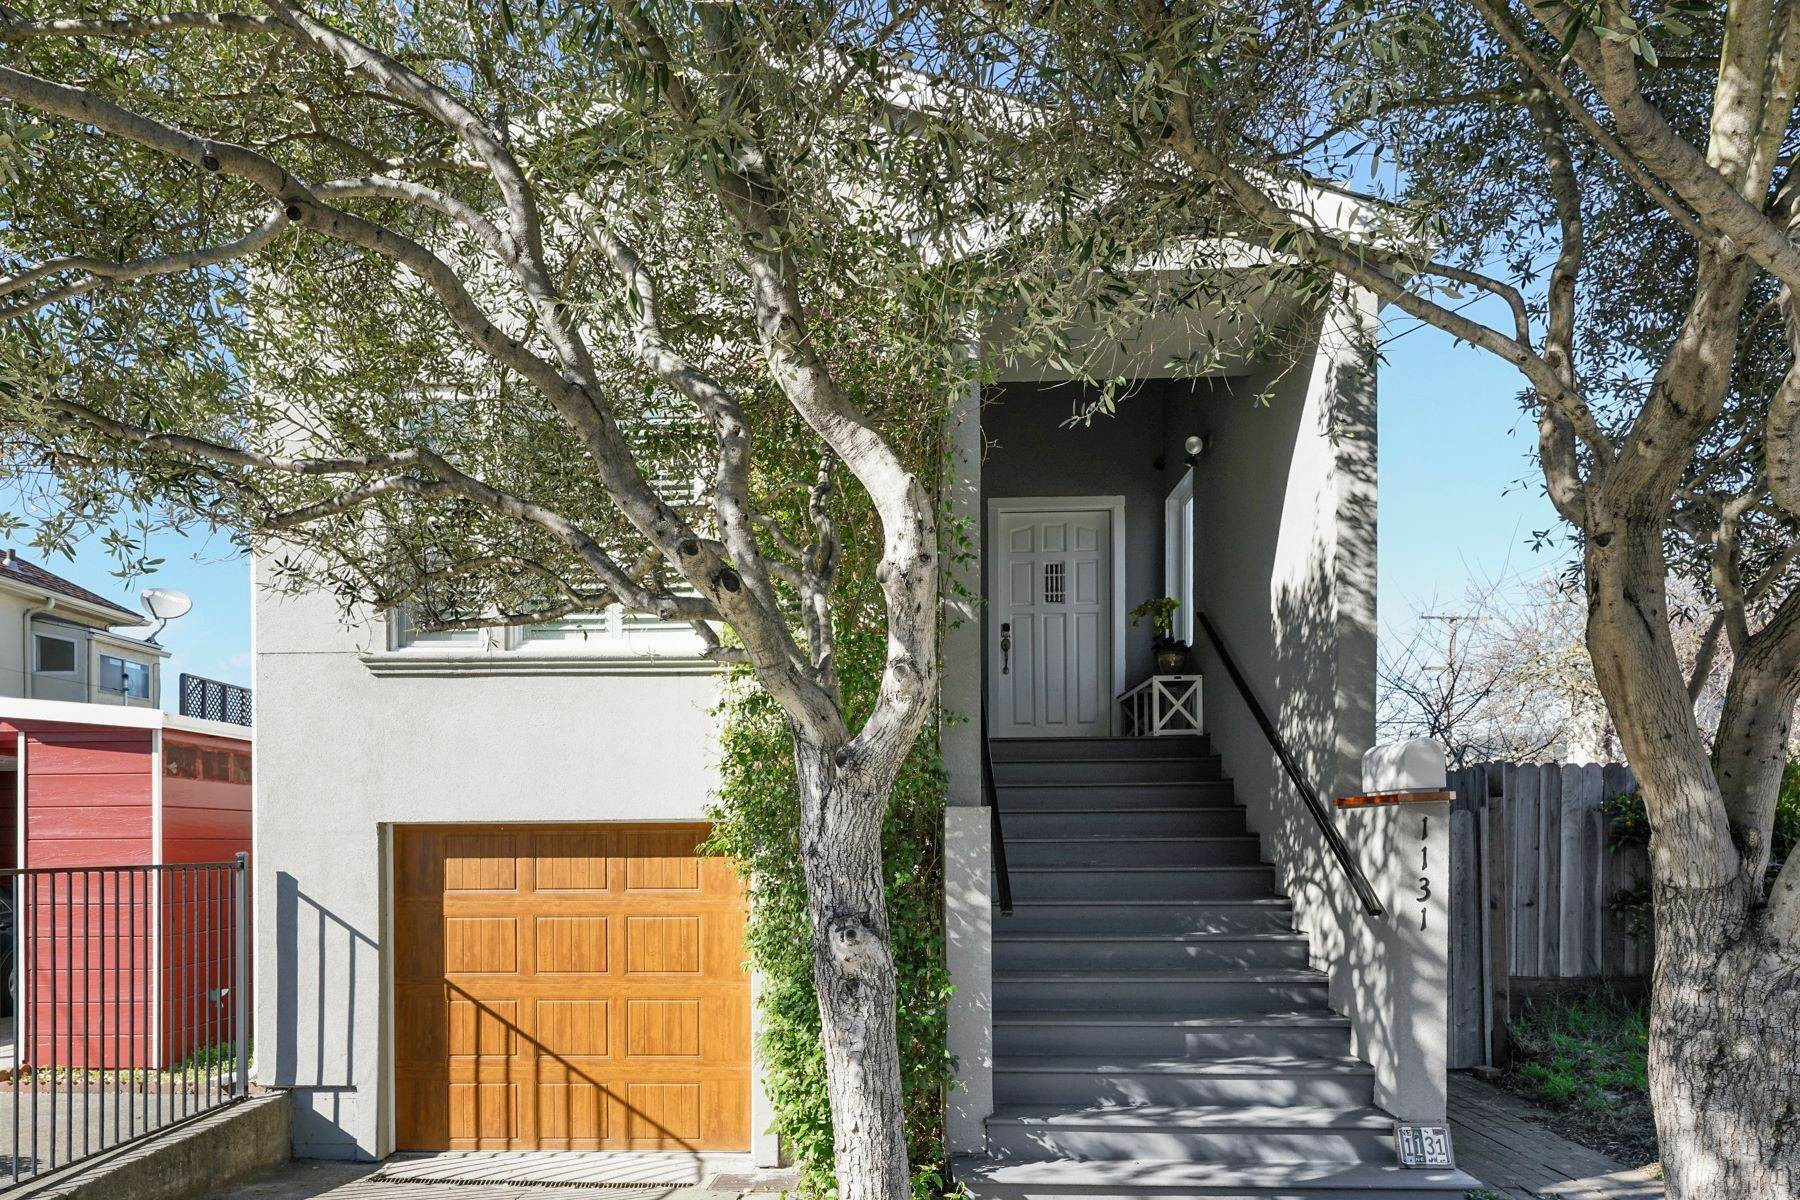 Single Family Homes for Sale at Beautifully Updated Albany Home 1131 Portland Avenue Albany, California 94706 United States